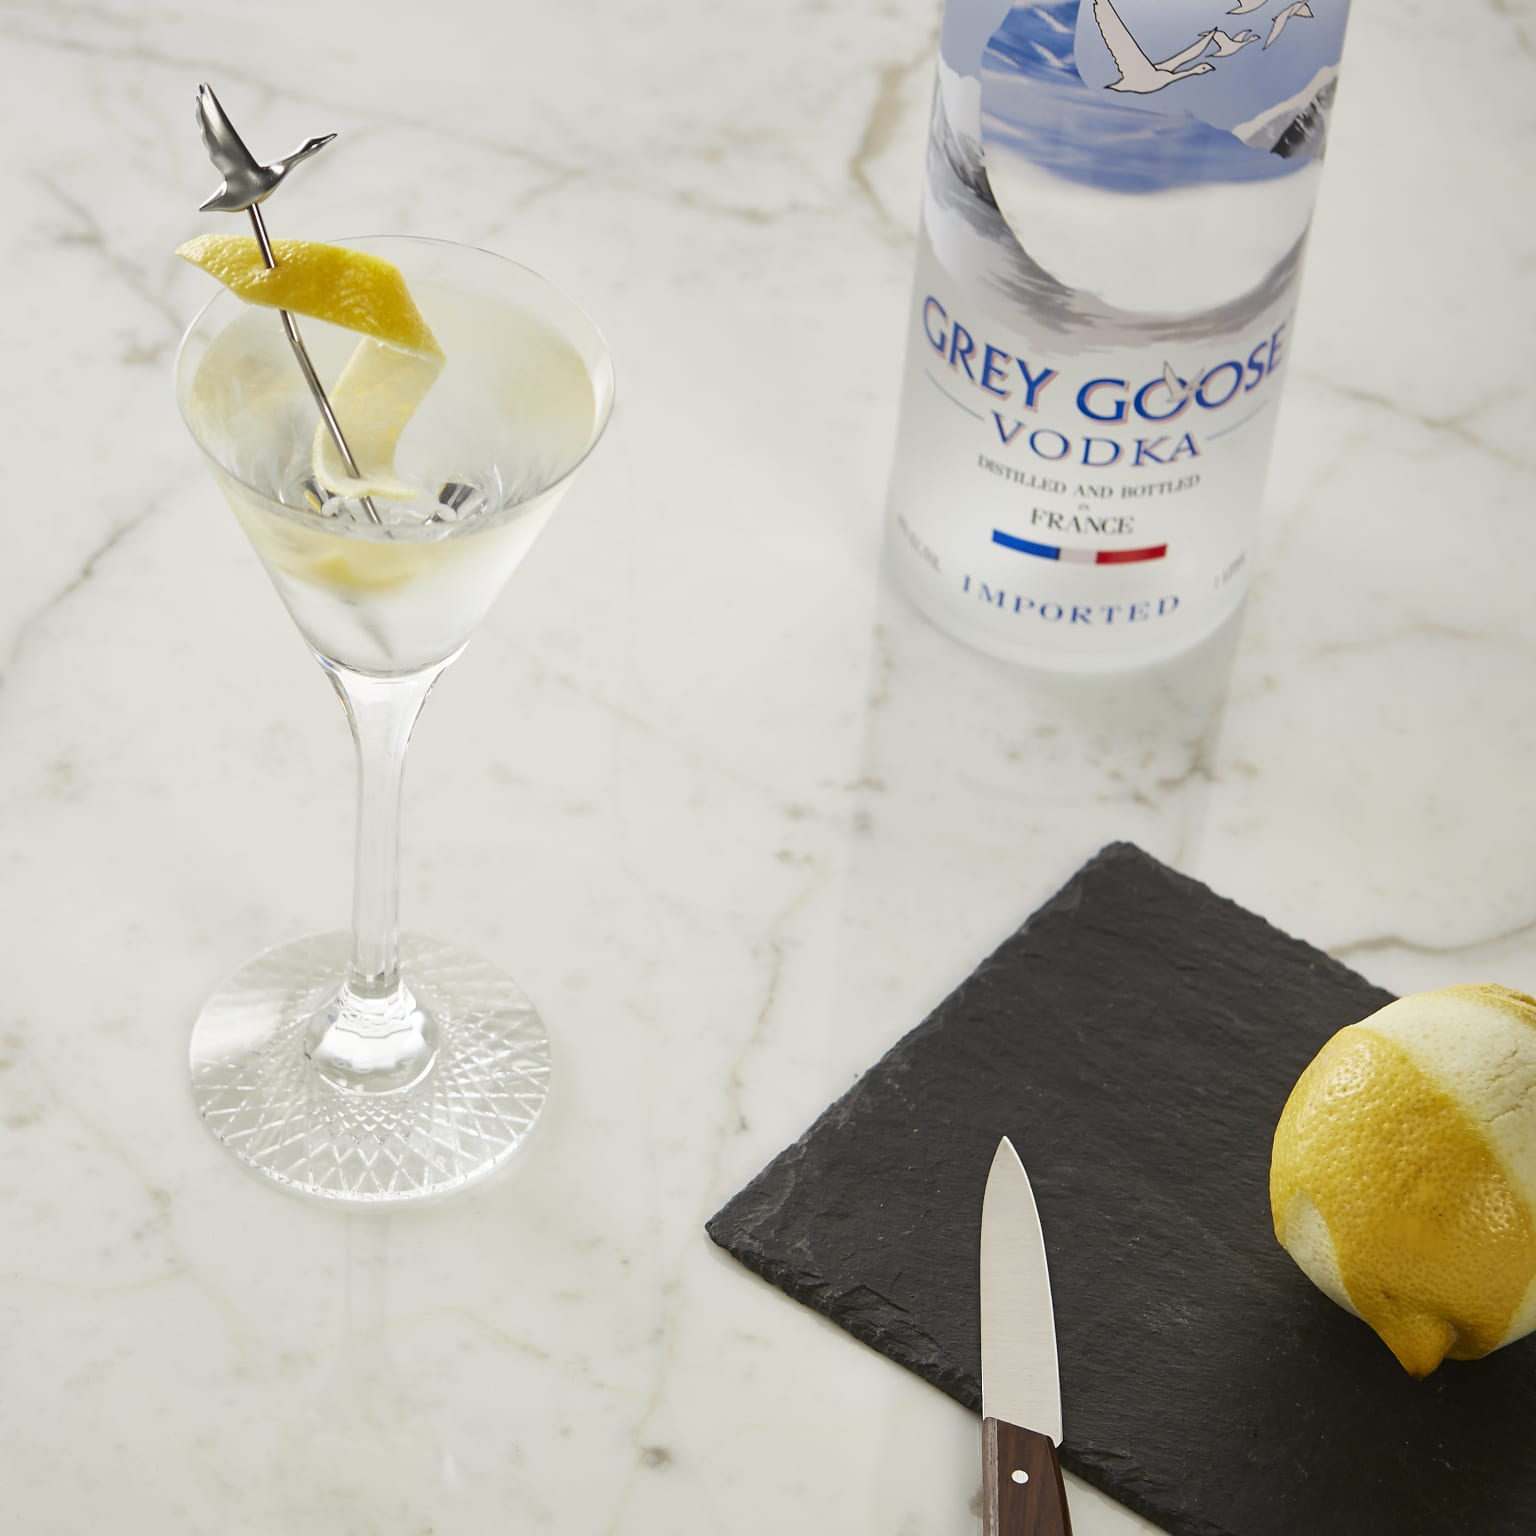 Grey Goose Social + Digital Content